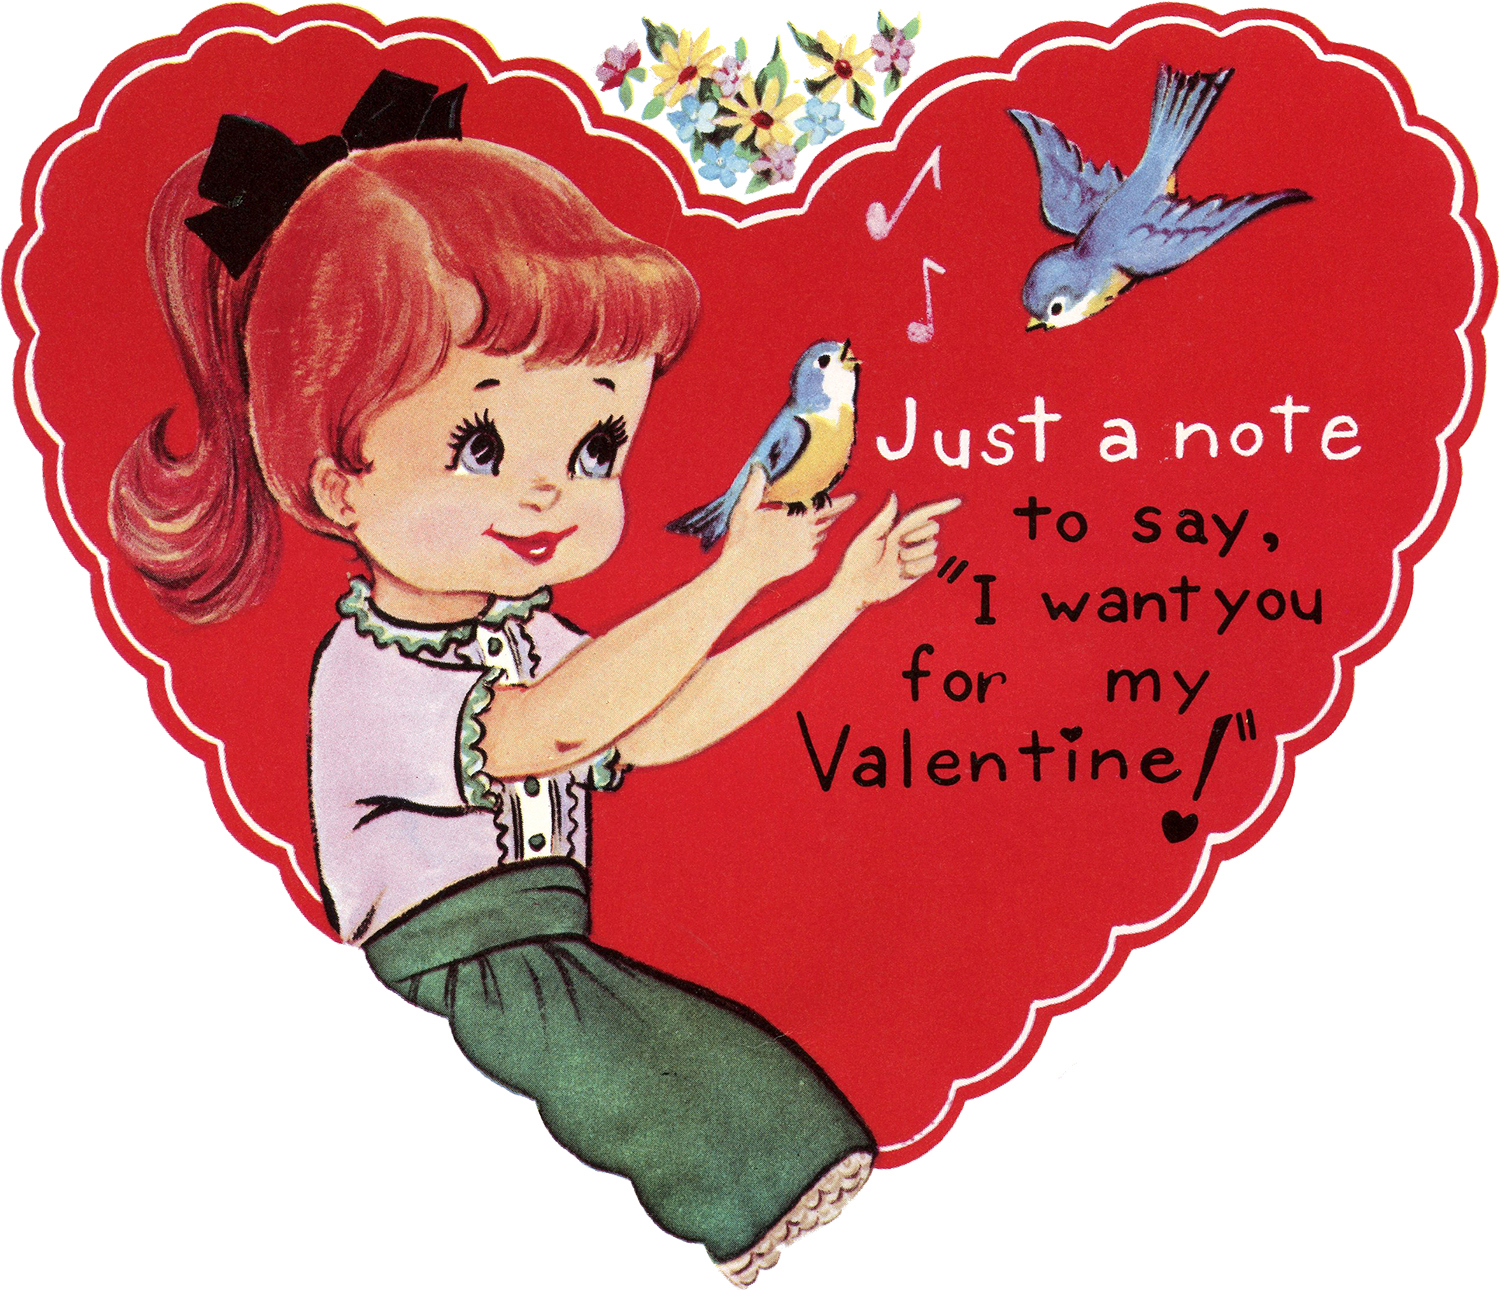 Retro Valentine Heart Girl with Bird Image